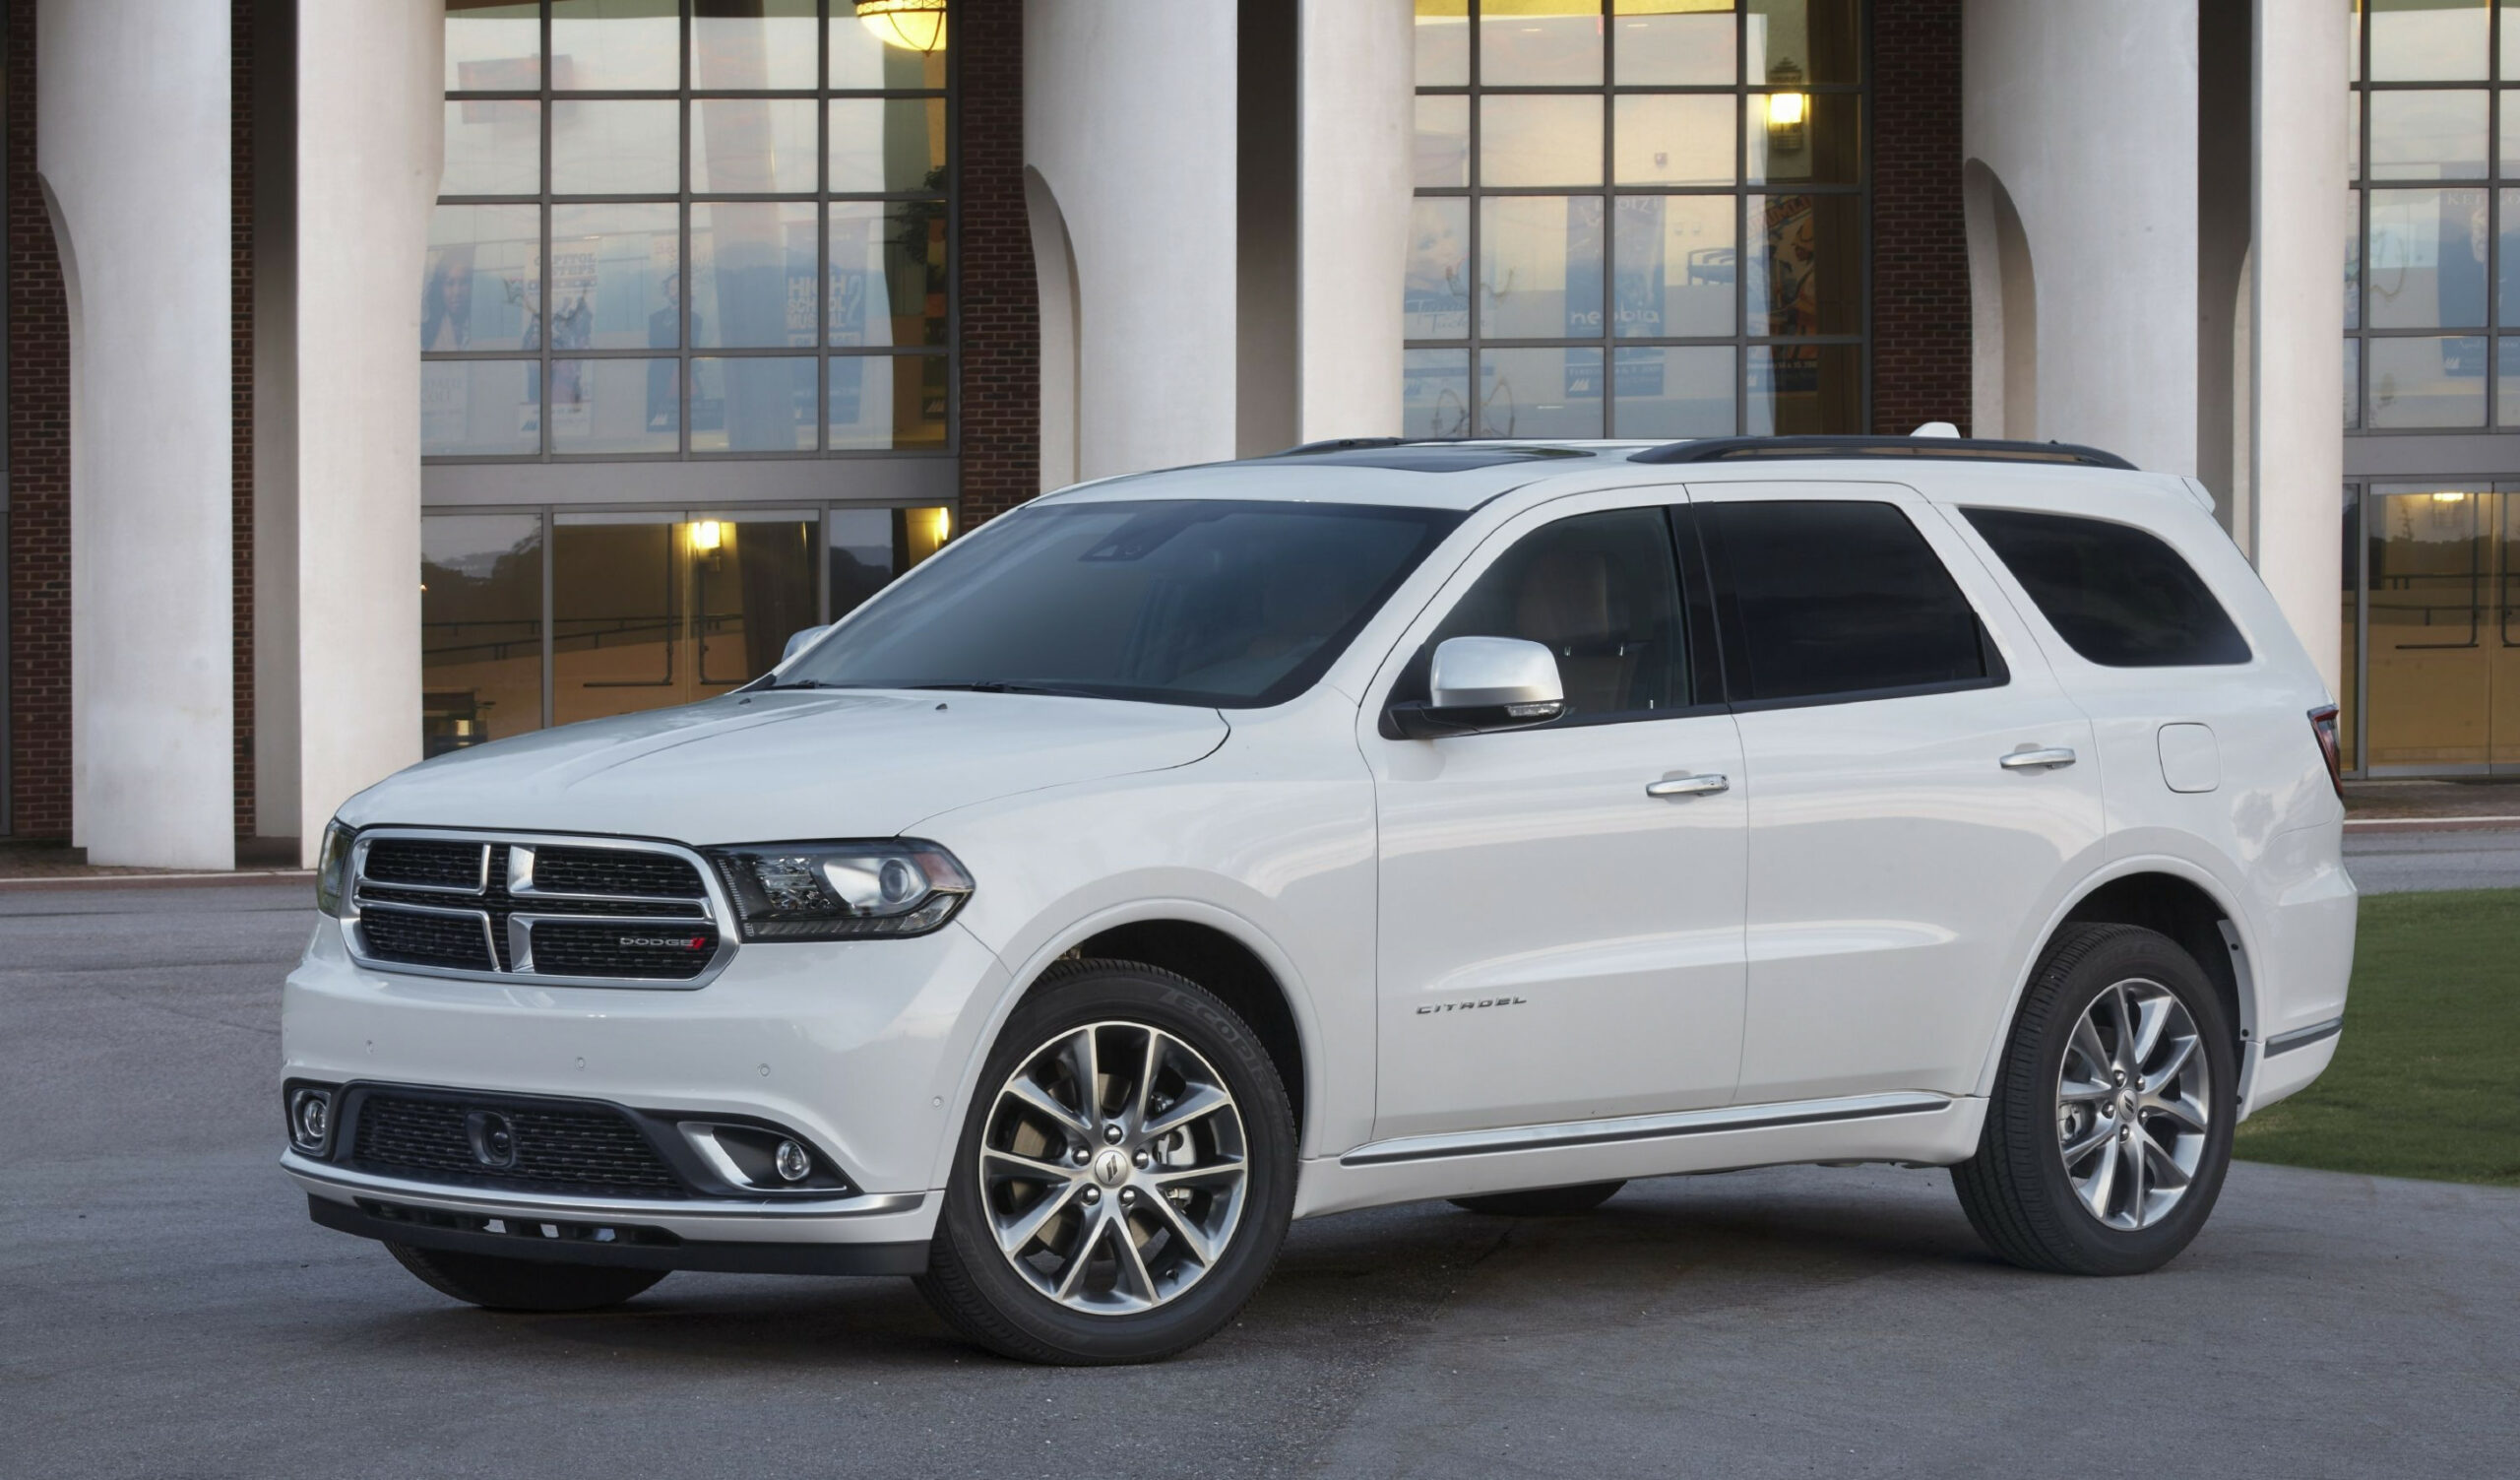 8 Dodge Durango Review, Pricing, and Specs